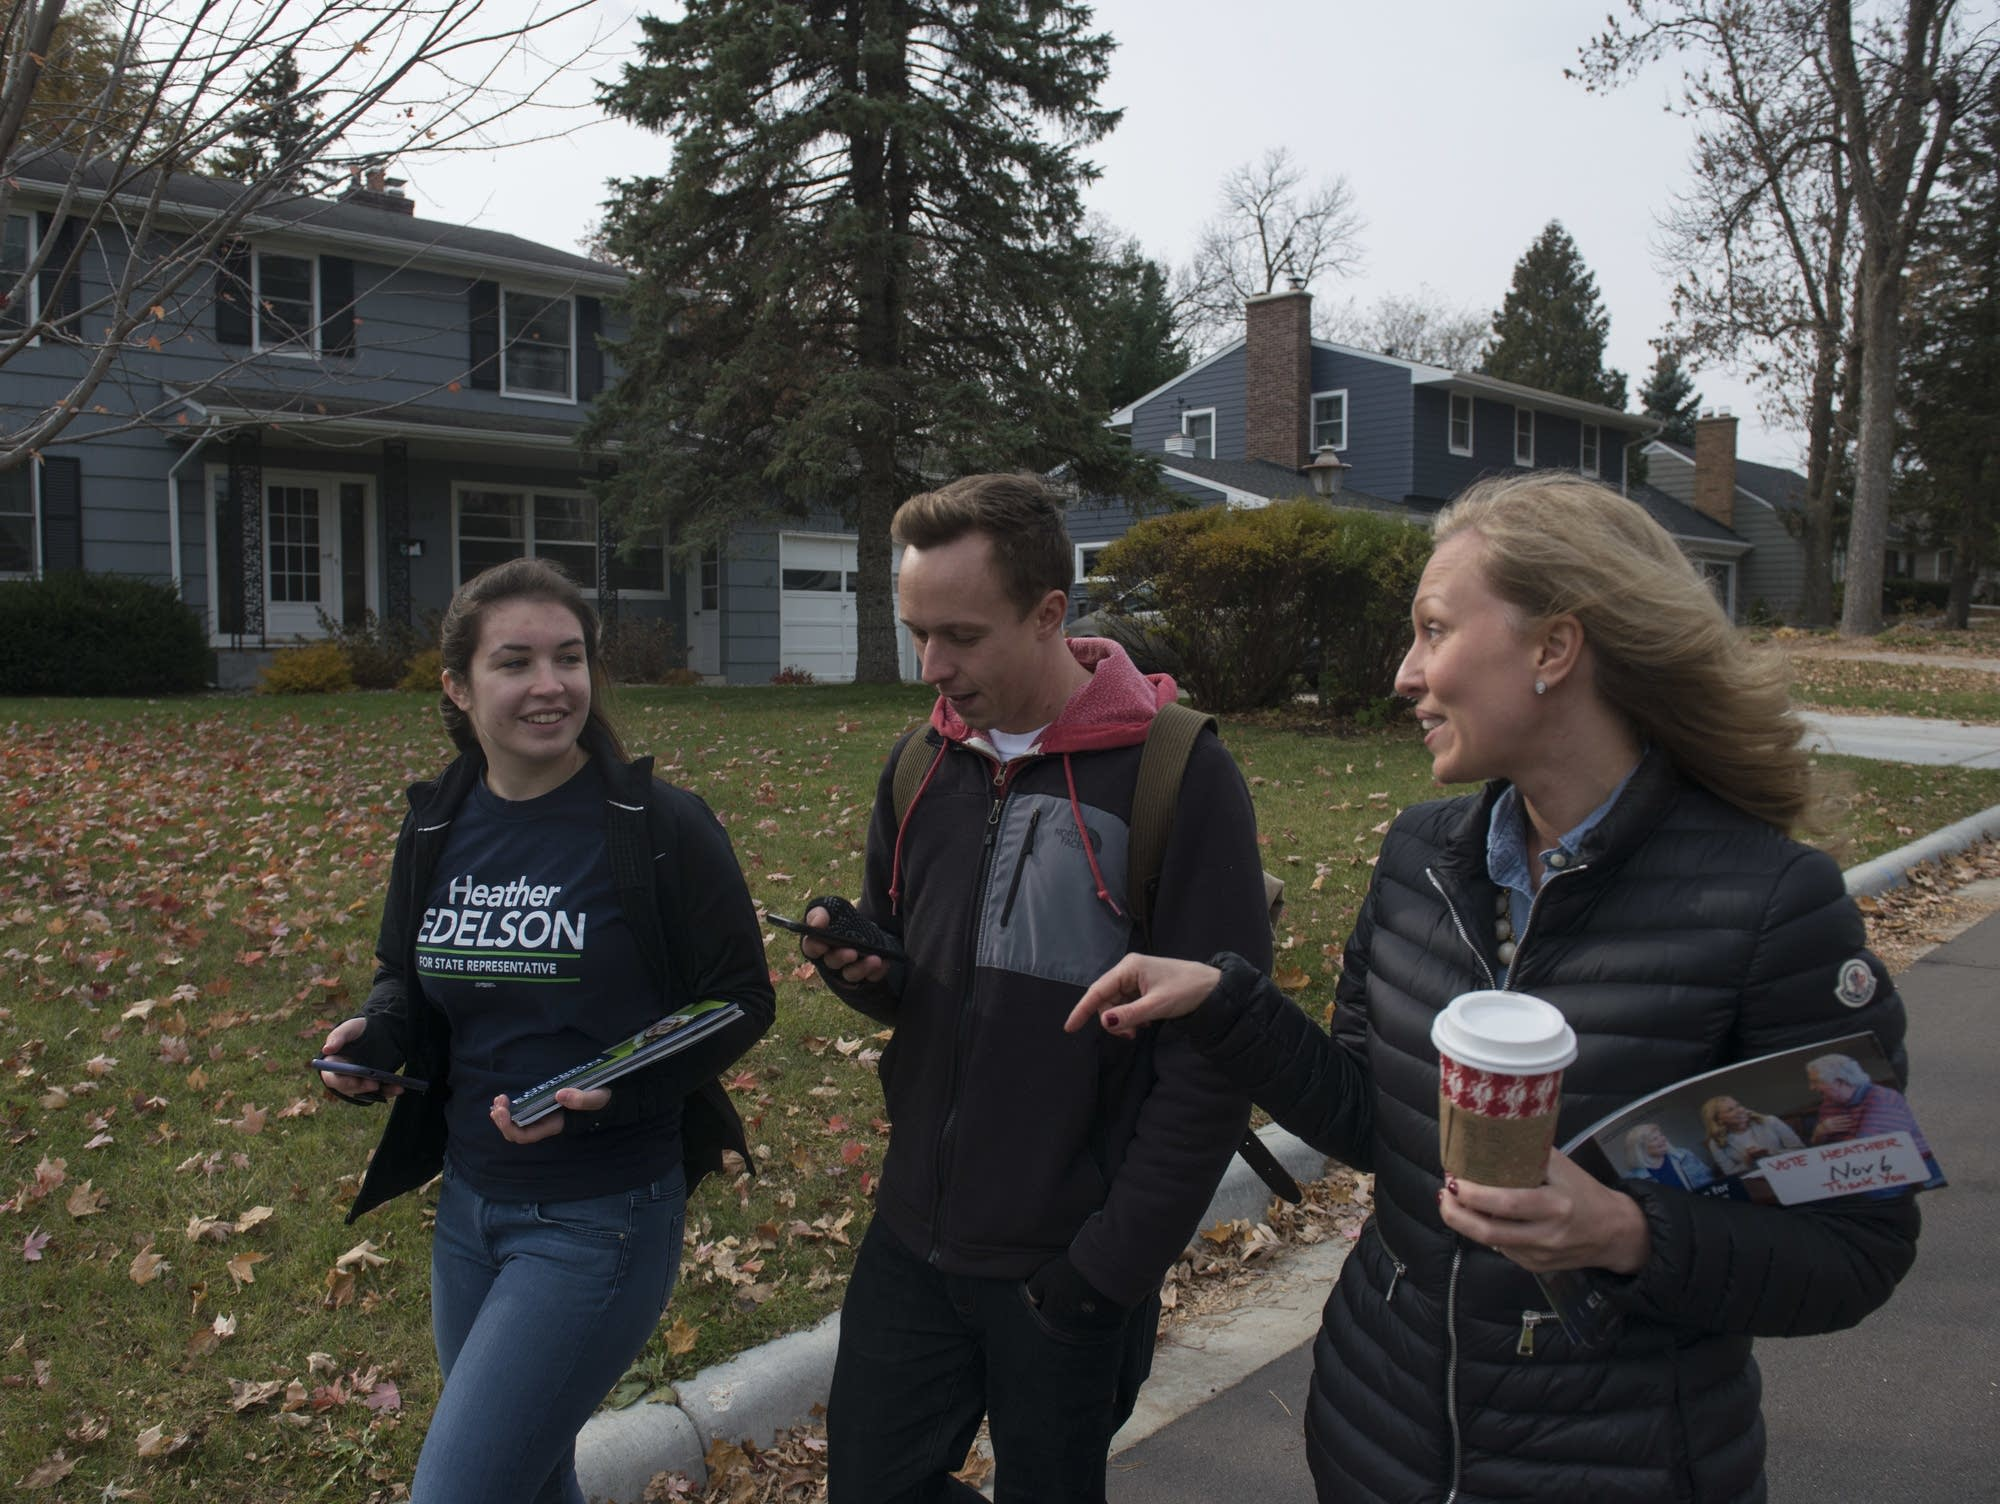 Macy Rooney, Nick Galli, and Heather Edelson walk down the street in Edina